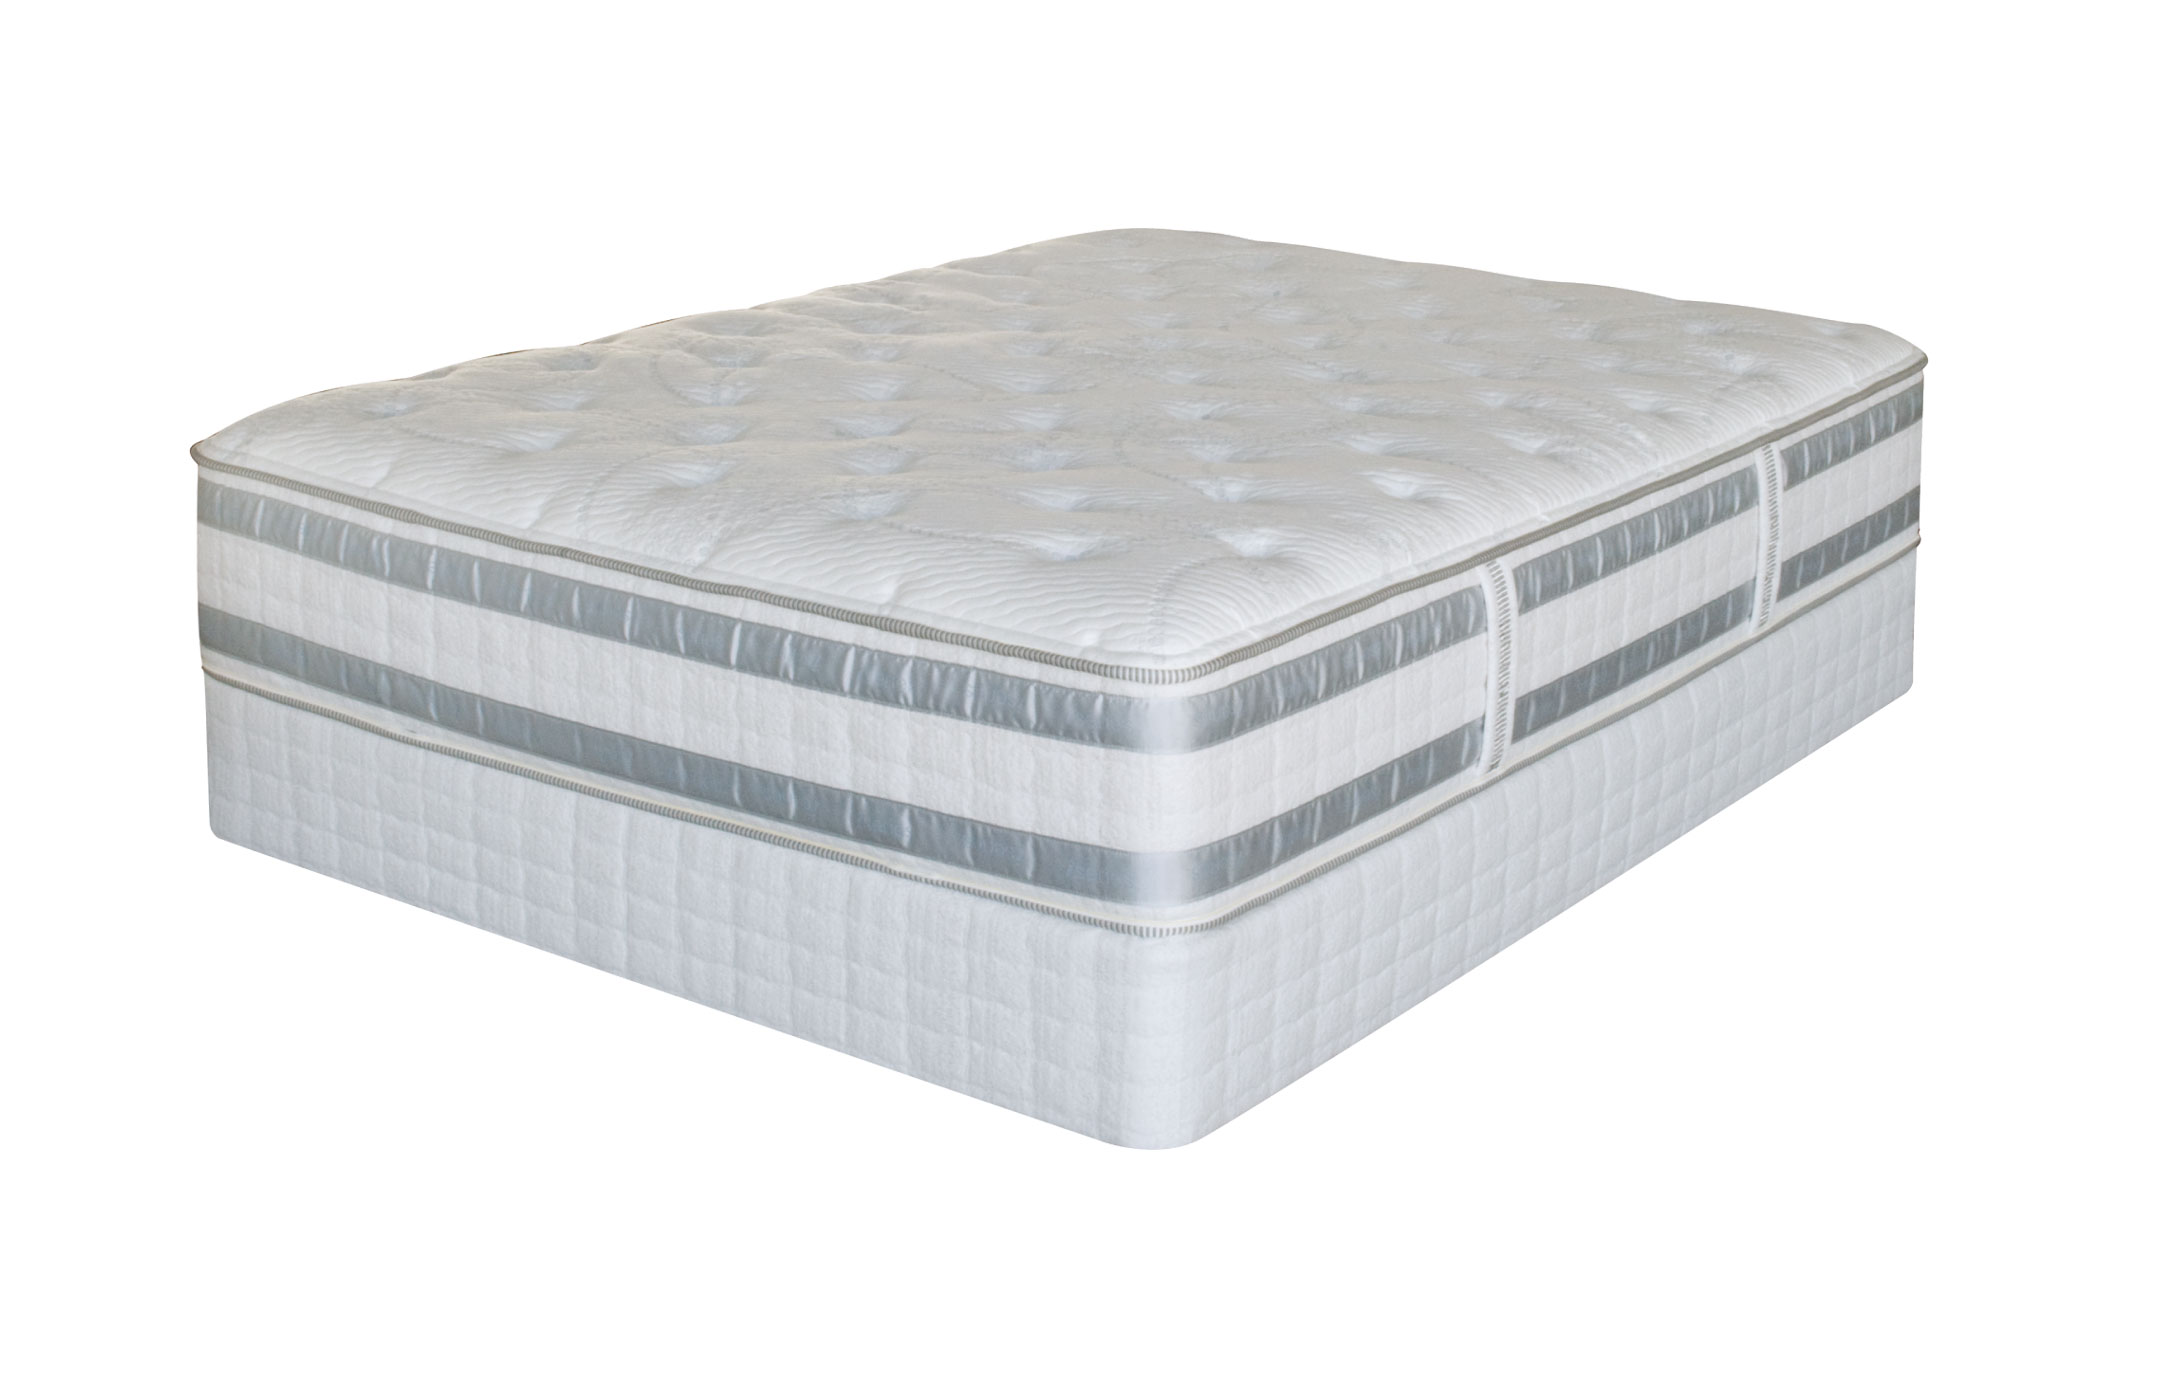 Serta Perfect Day iSeries Applause Plush Mattress